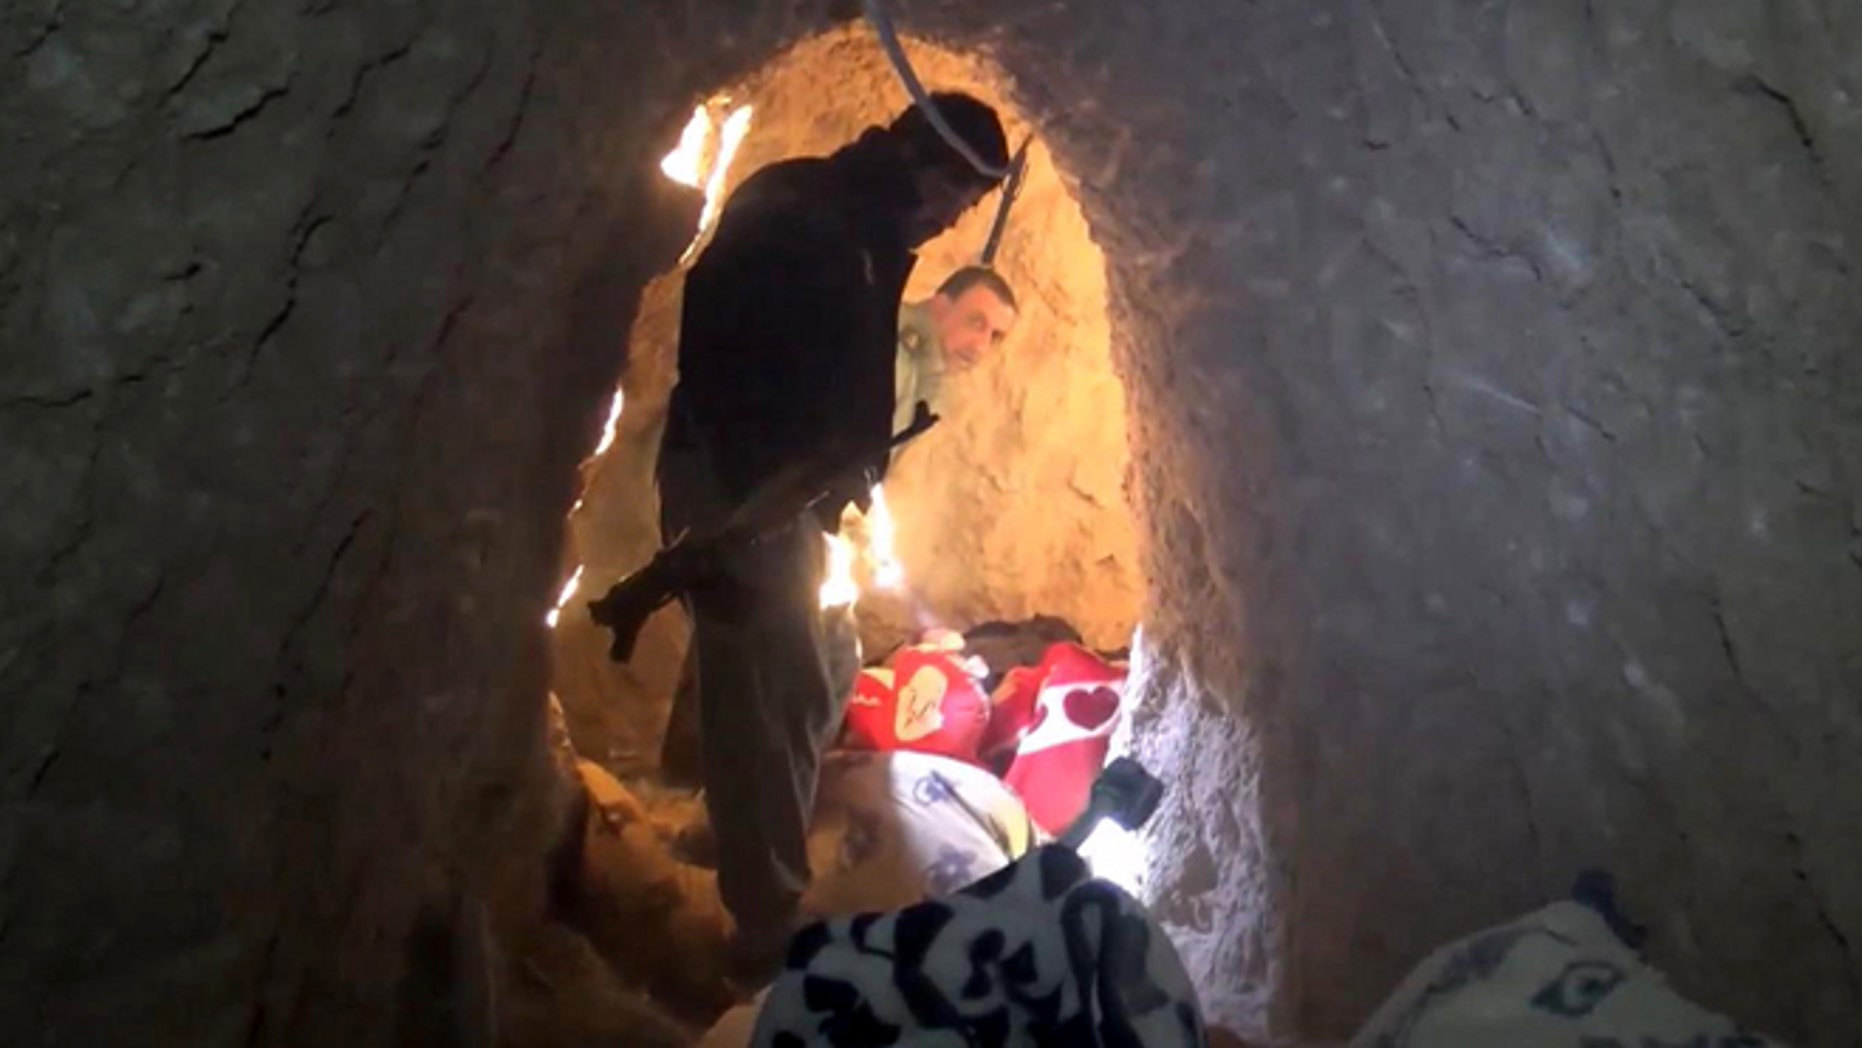 Nov. 22, 2015: Kurdish security forces are seen in a tunnel complex under the city of Sinjar, northern Iraq that were used by Islamic State fighters to move undetected and avoid coalition airstrikes before the town was retaken from the militants.